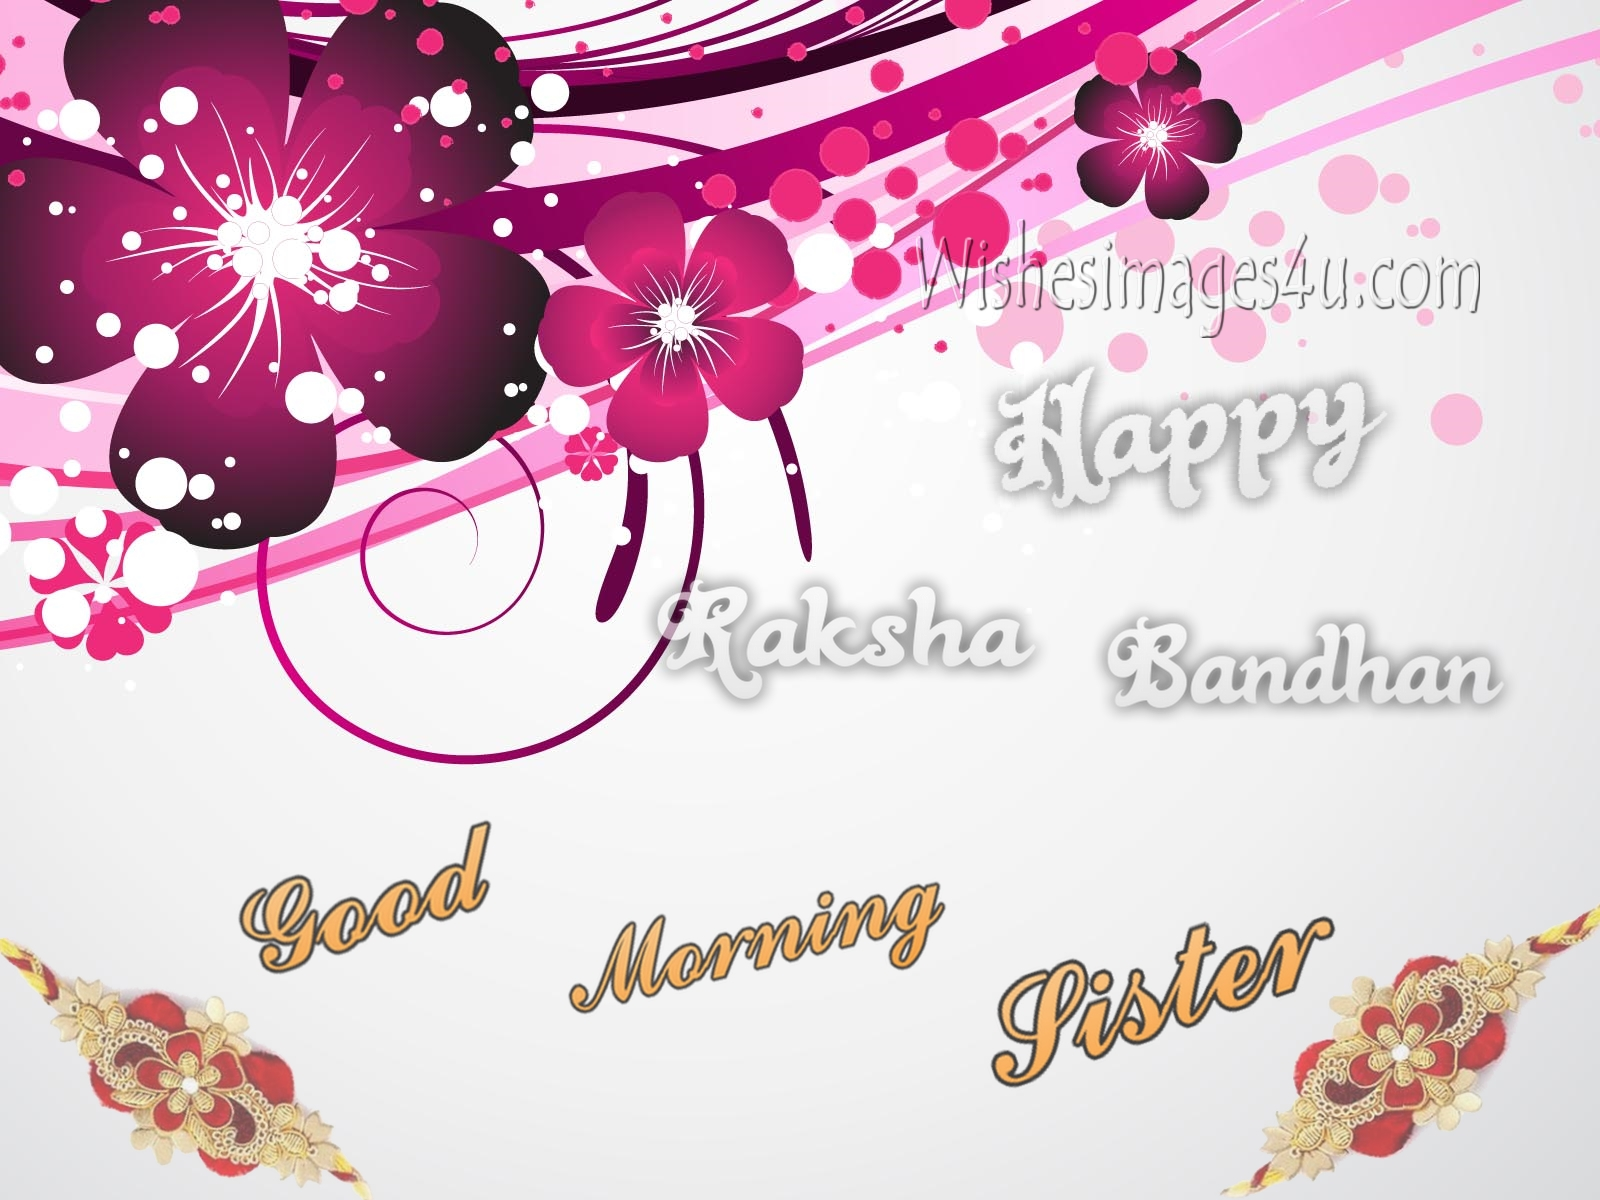 Good morning wishes for sister free christmas card designs raksha bandhan 2017 photo greetings for sisters raksha bandhan happy2braksha2bbandhan2b2016 kristyandbryce Image collections